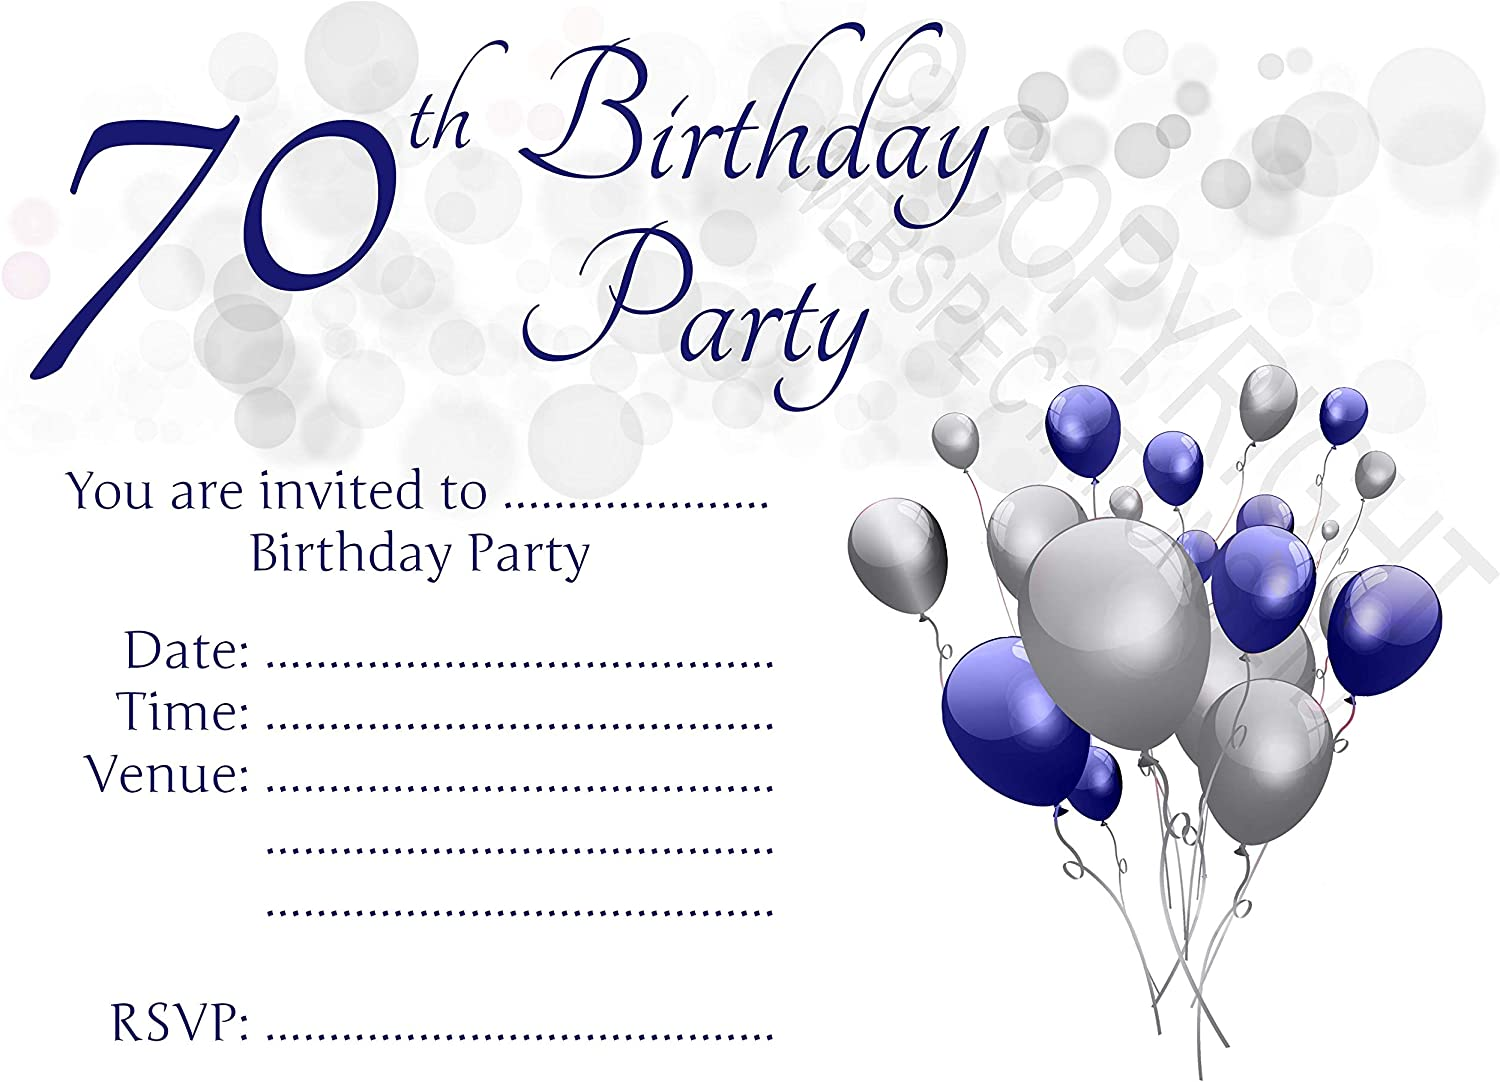 Blue /& Silver Seventieth Invites for Male//Female Birthday Parties Pack of 100 Blue /& Silver with Envelopes 10-100 Pack of 70th Birthday Party Invitations with Envelopes